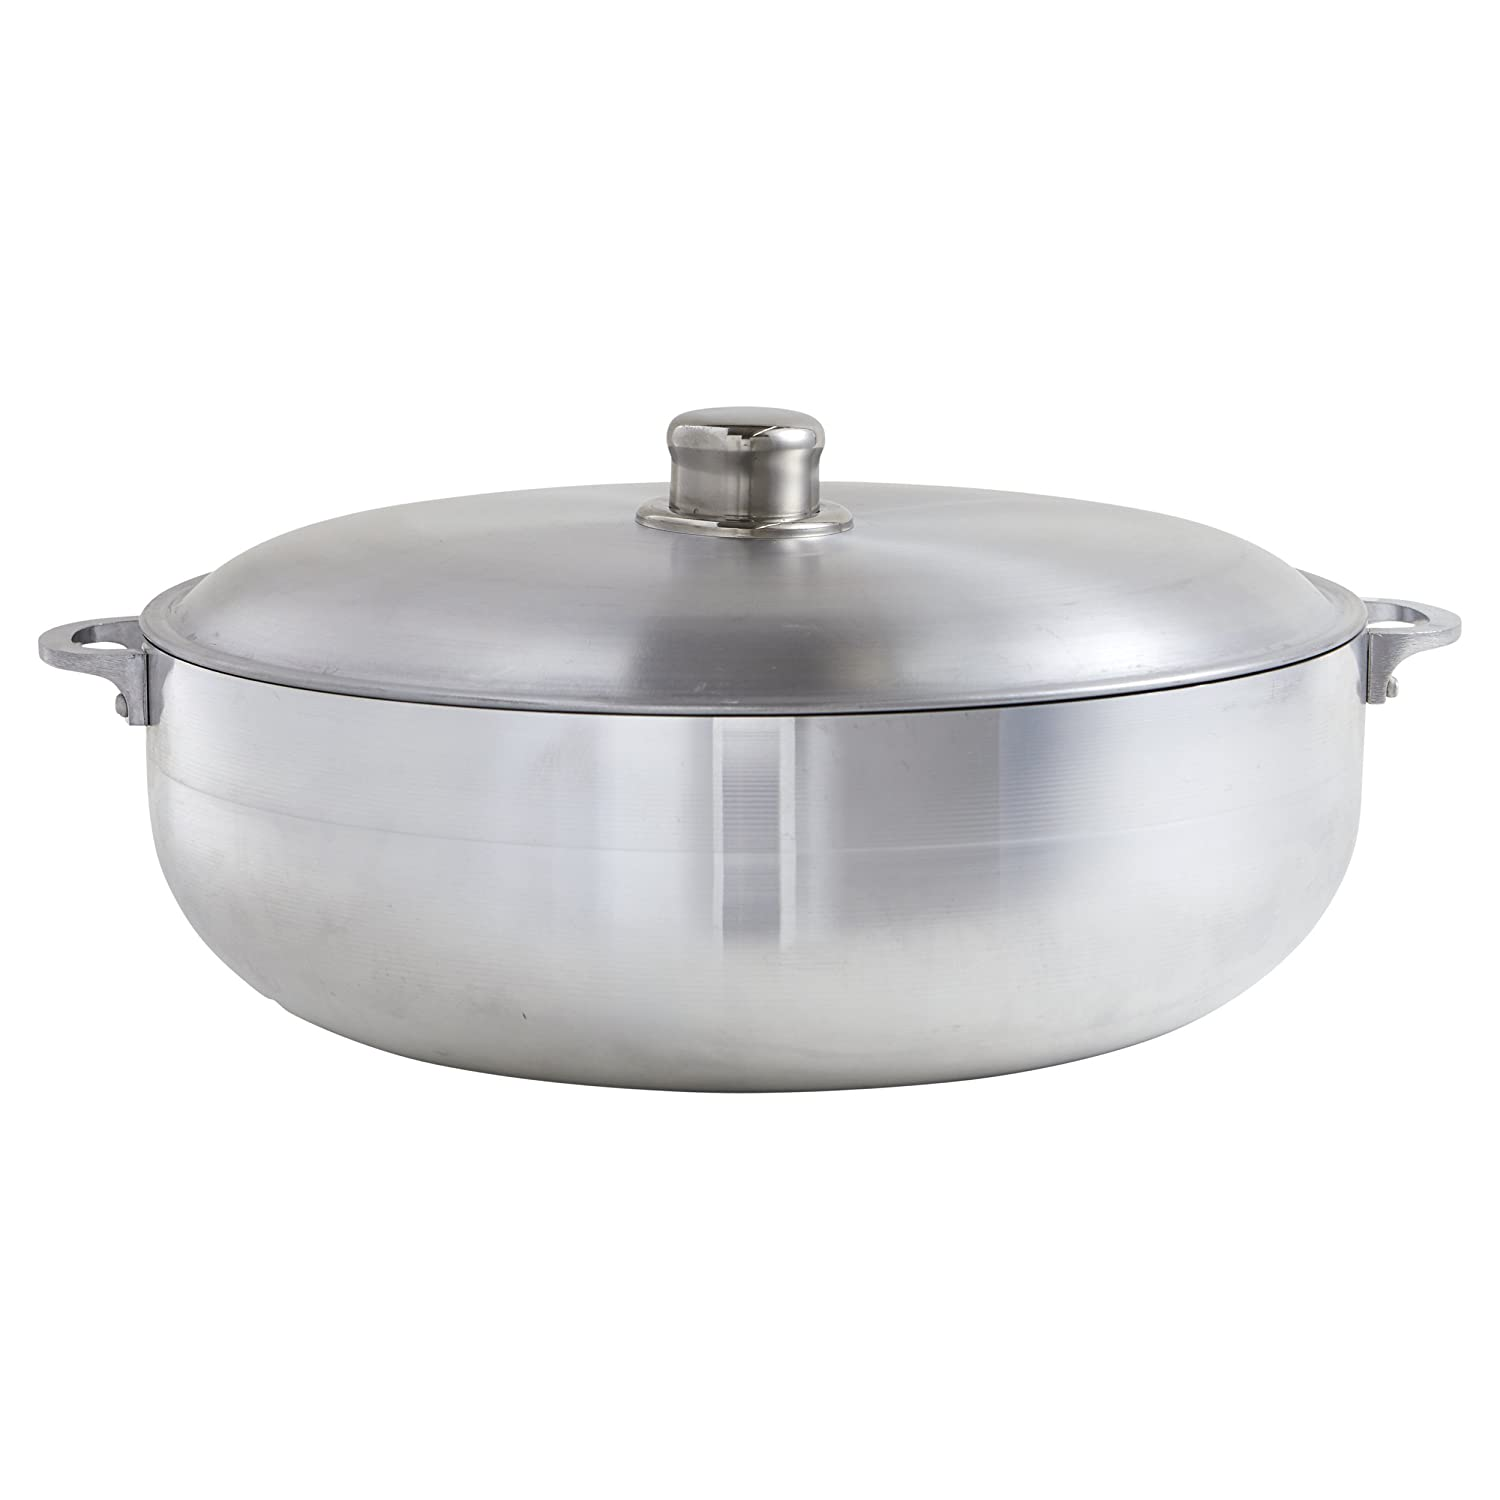 IMUSA USA R200-CALDERO 32 Traditional Caldero with Lid 7.5-Quart, Silver